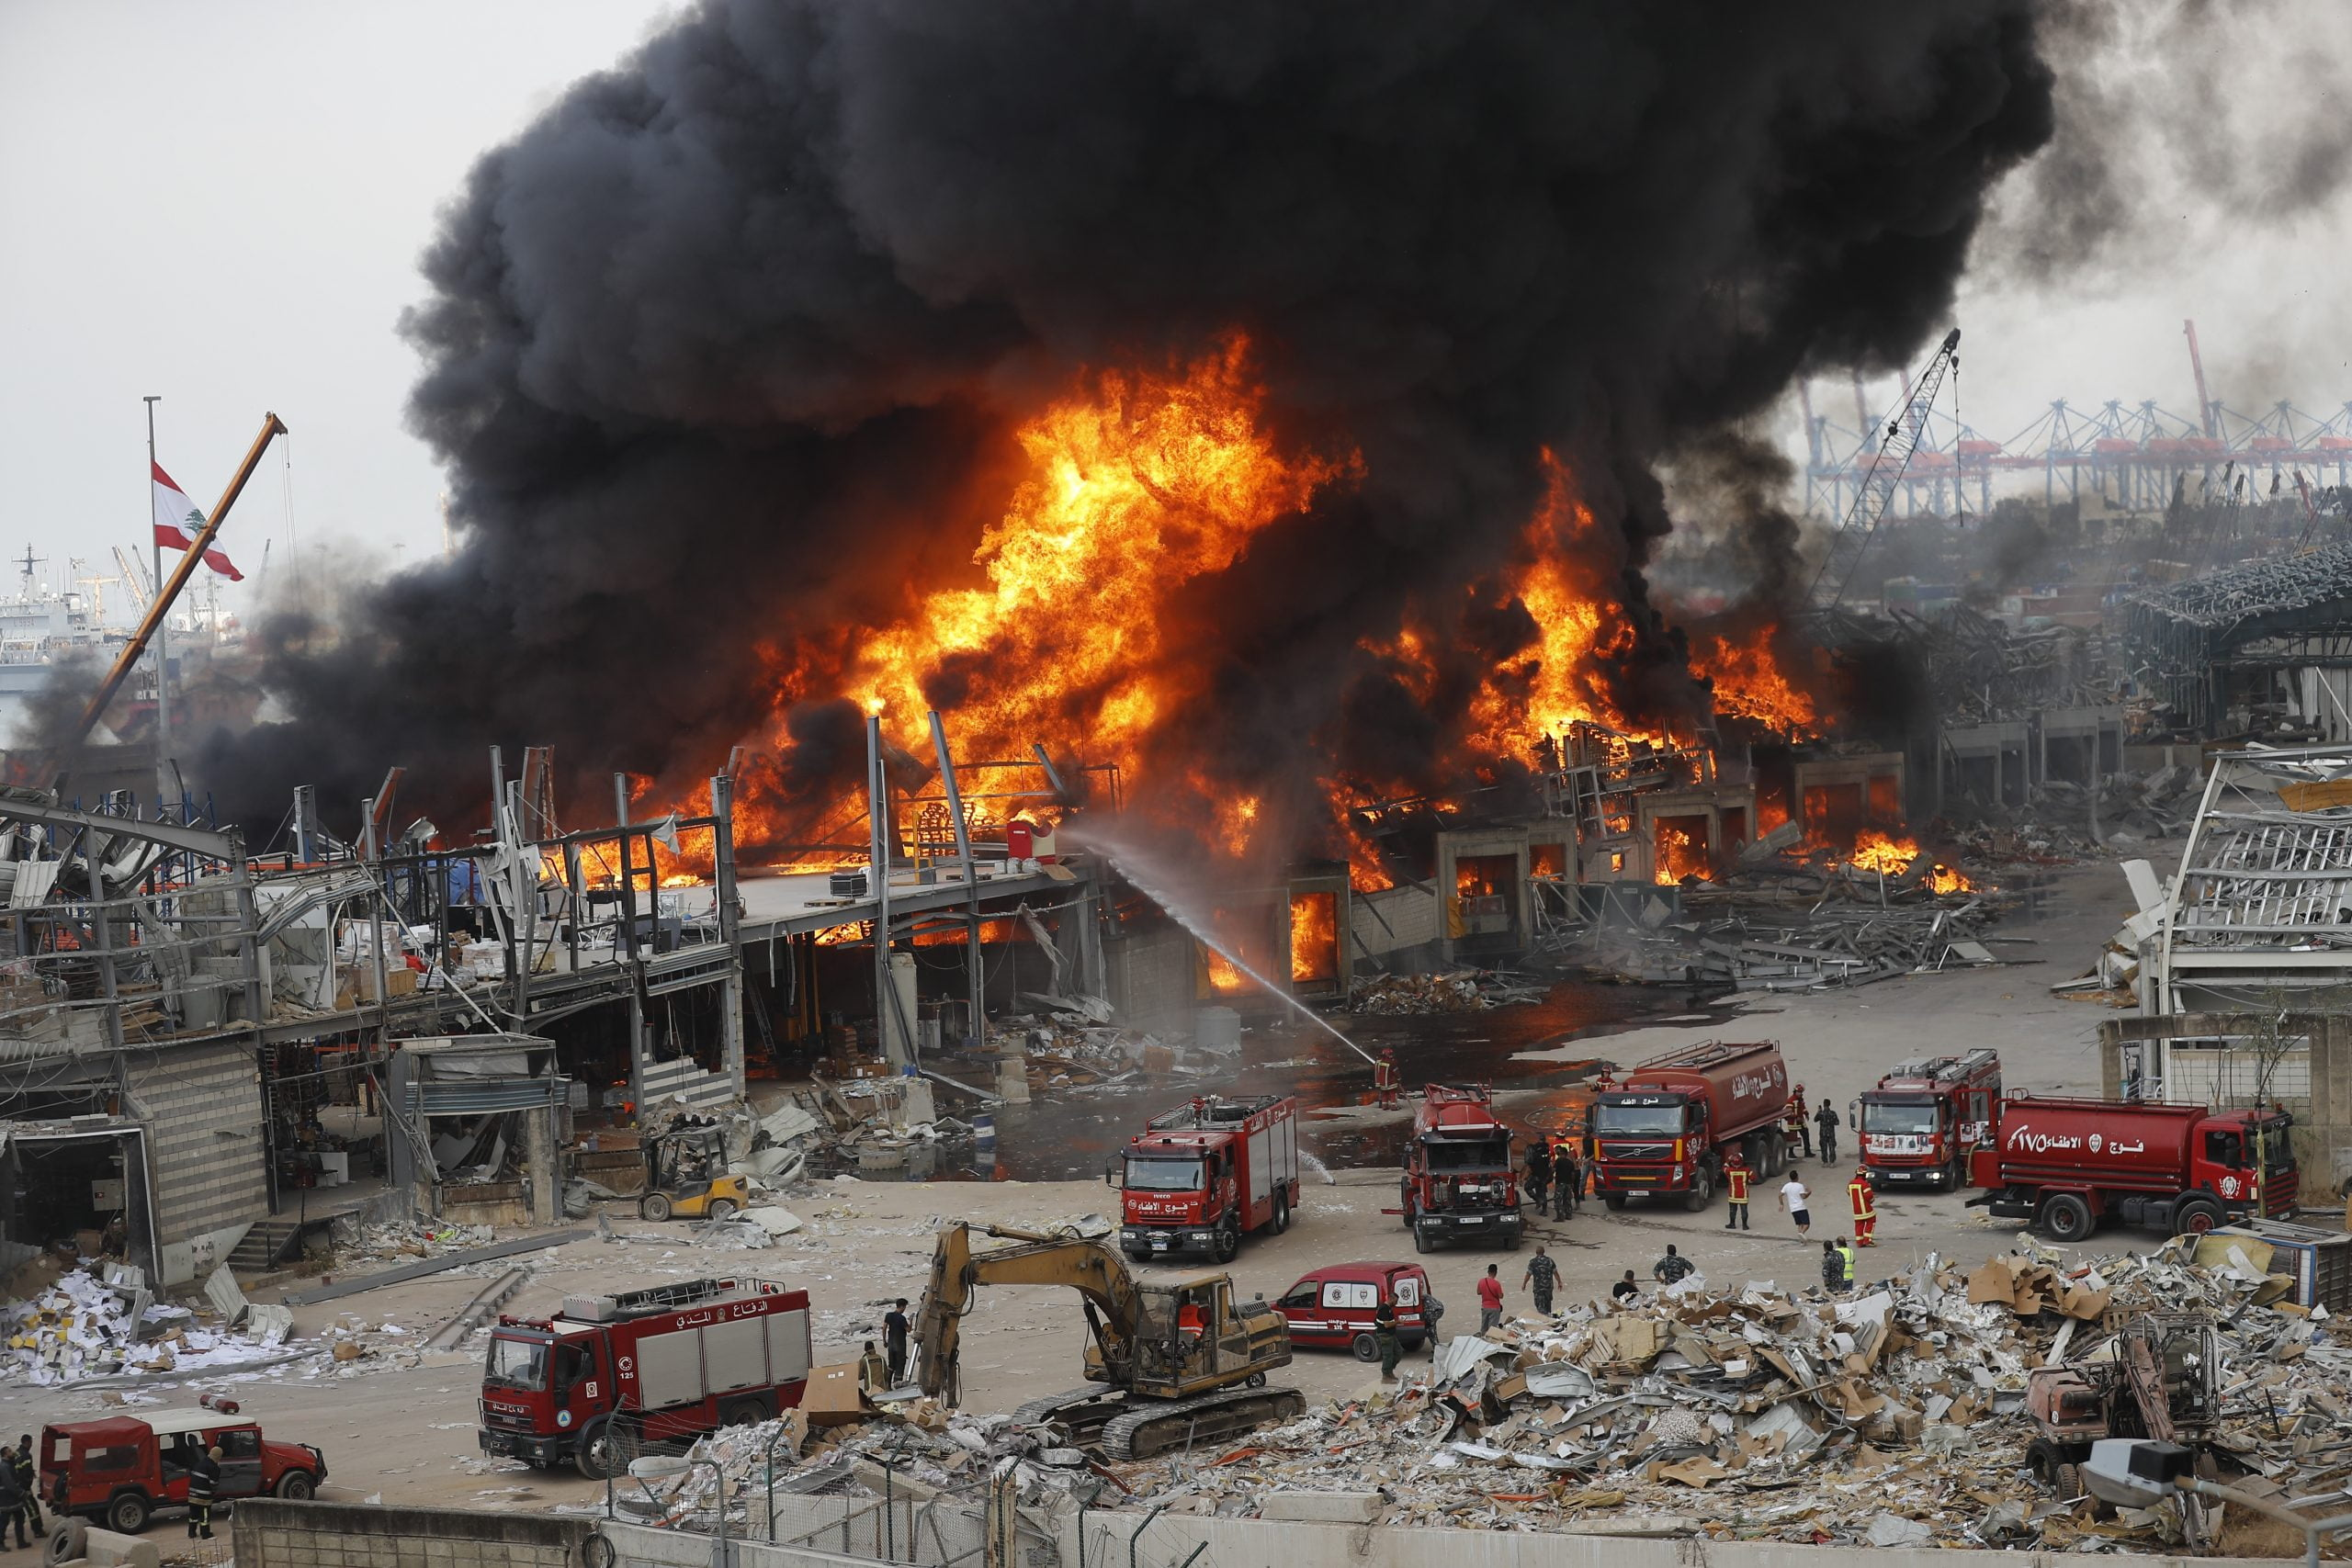 Huge fire breaks out at Beirut port a month after explosion 4